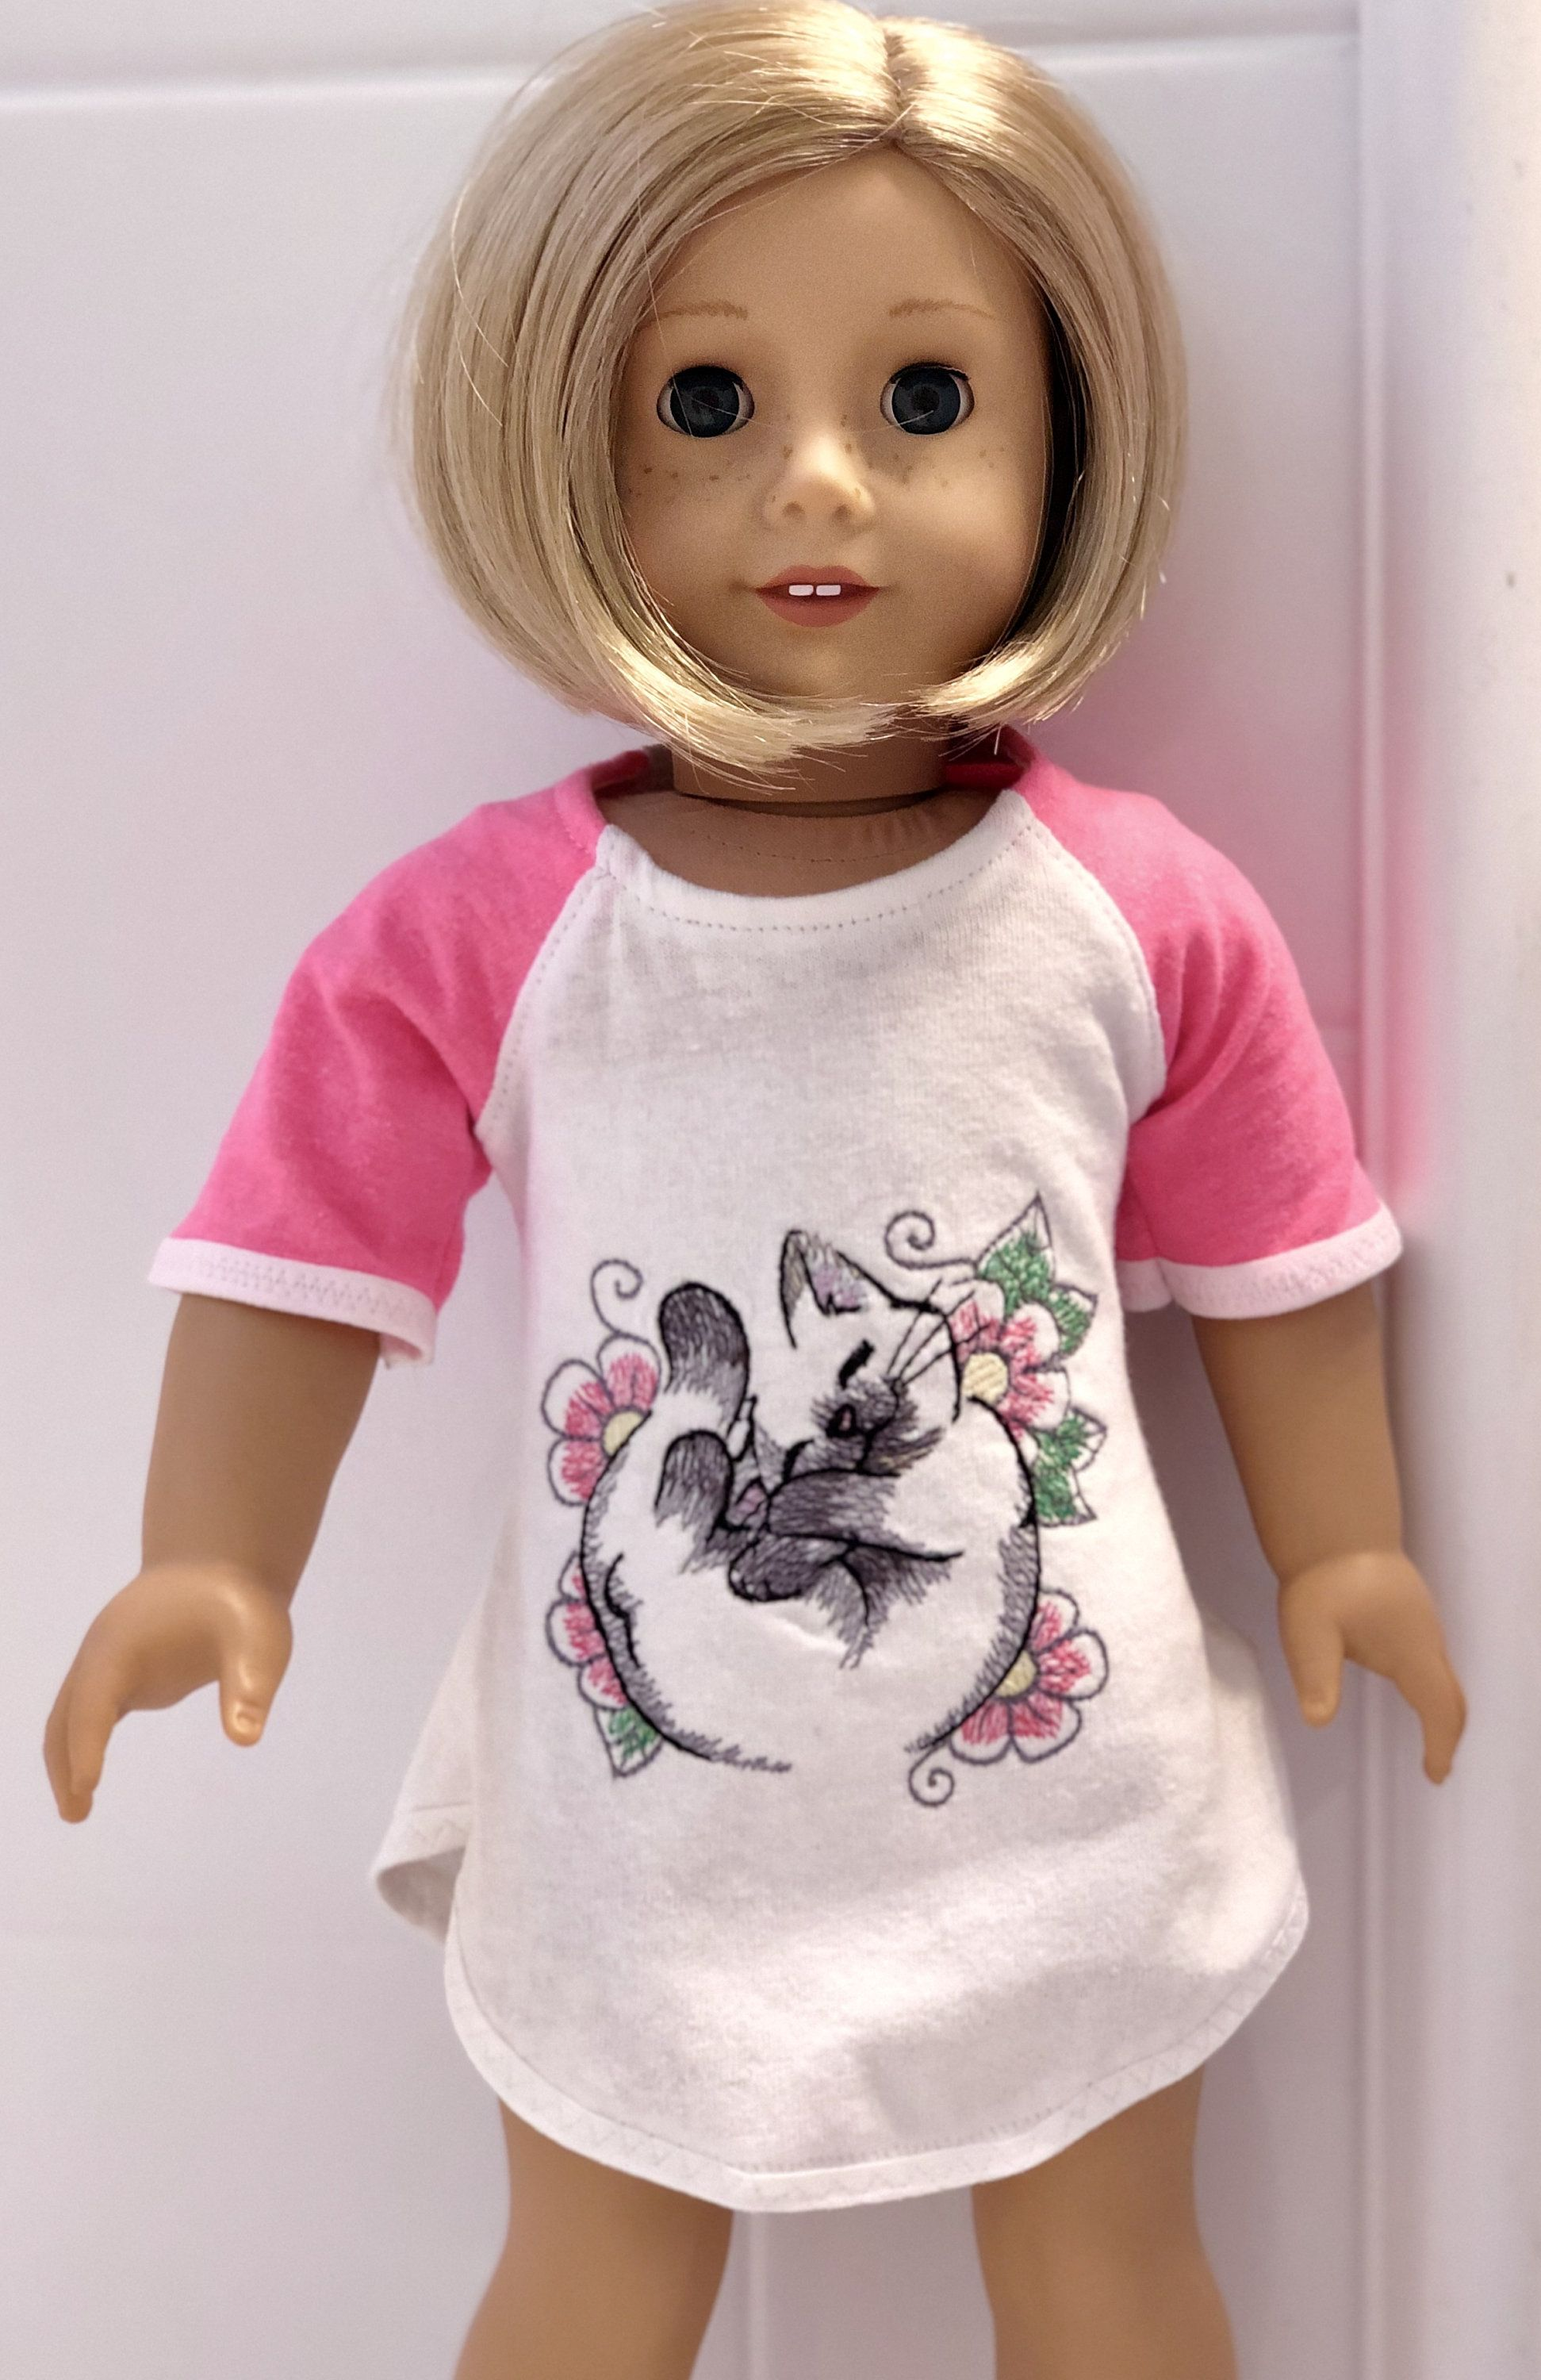 18 Doll Nightgown Pink and White with Kitty Made to Fit American Girl Doll #littledolls